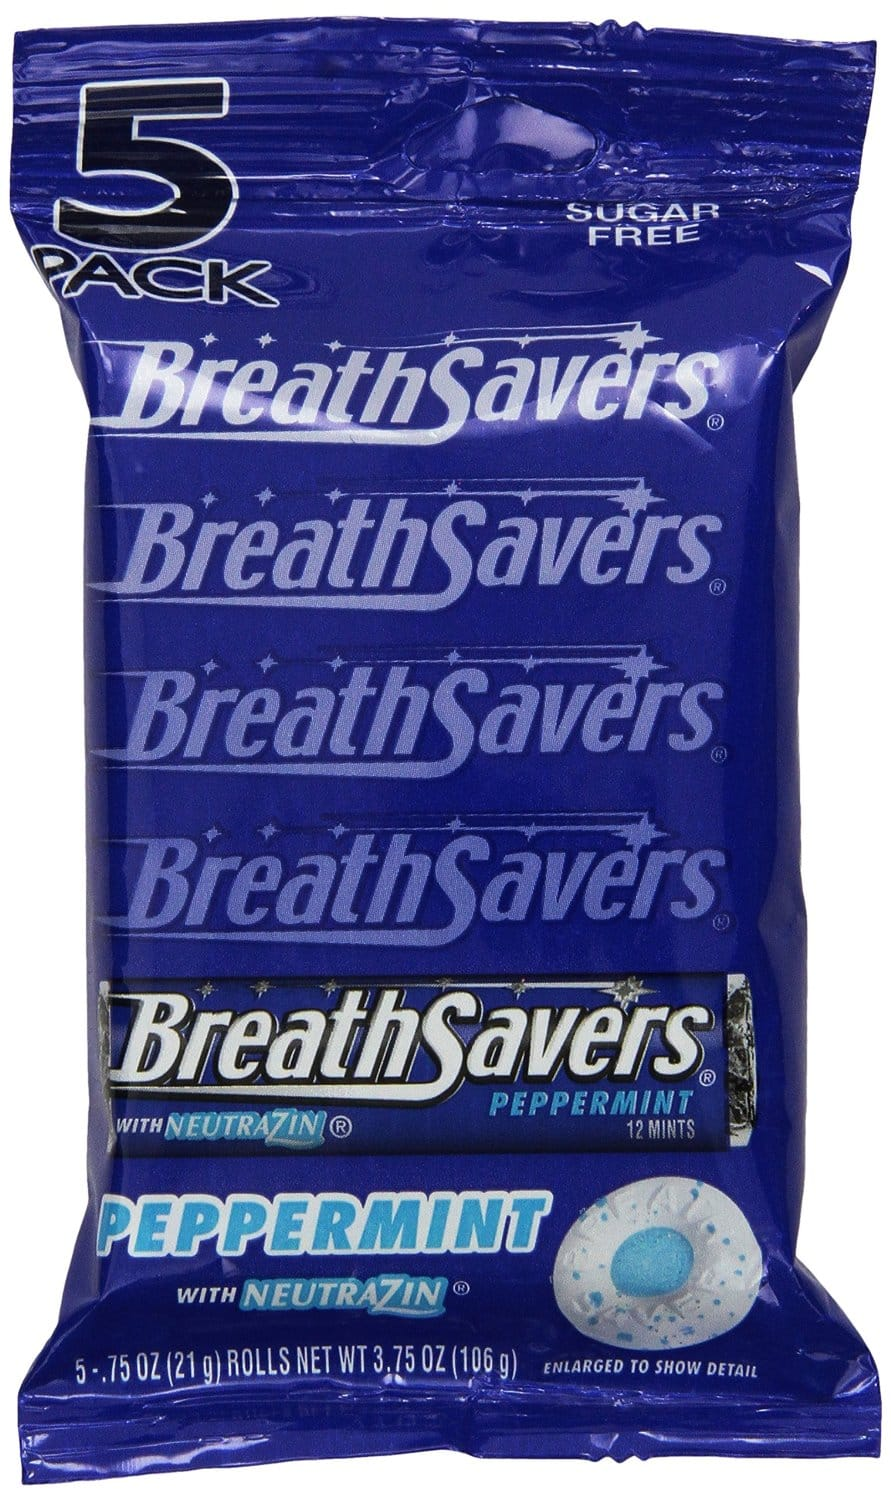 75-Rolls Breath Savers Mints (Peppermint) $5.11 or less + Free Shipping - Amazon S&S